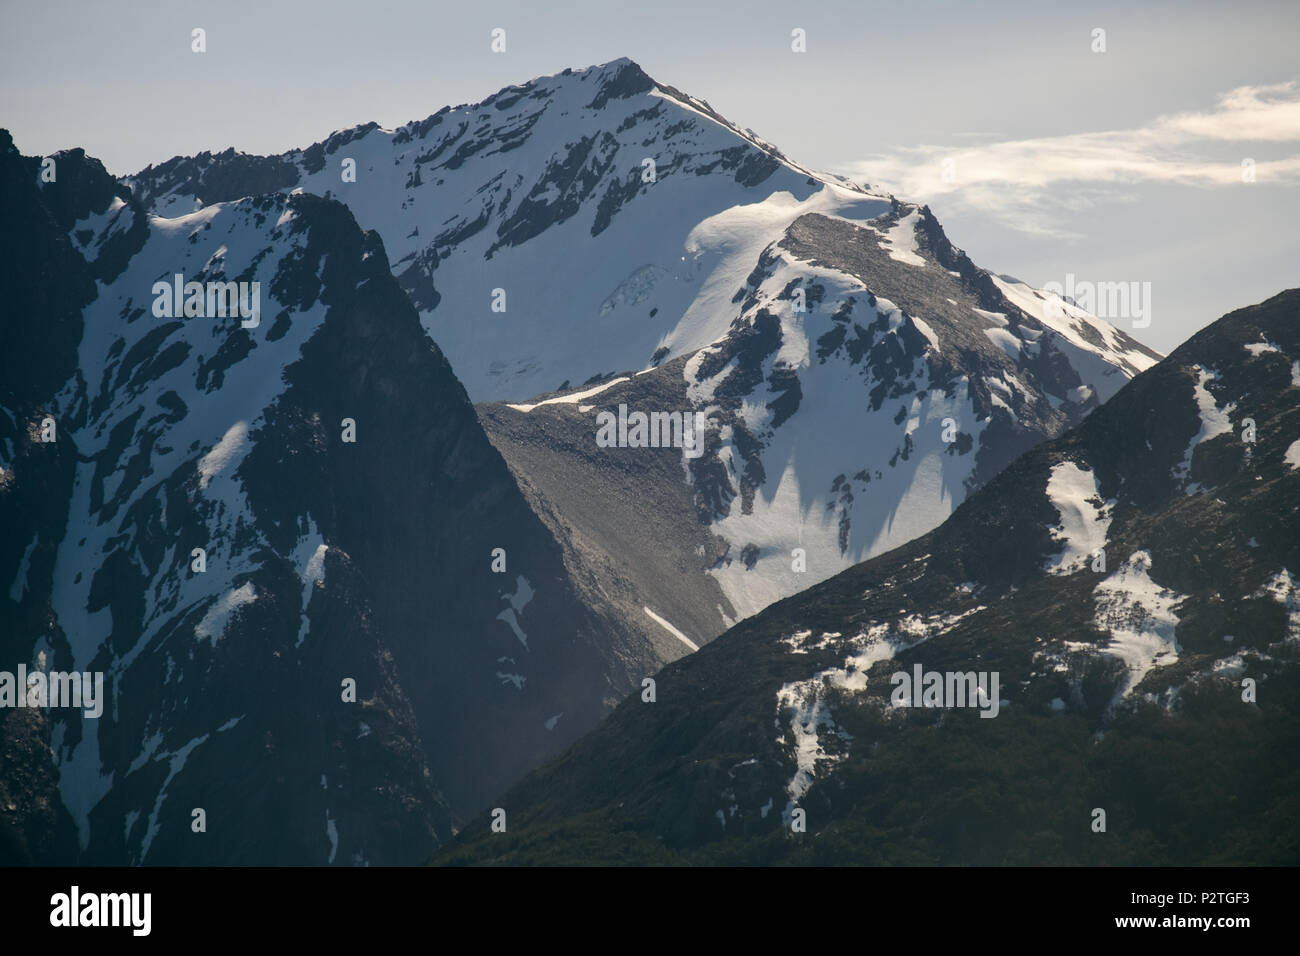 This is a close view on one of the Martial mountains that surround the Argentinian city of Ushuaia. Winter is coming and snow has fallen. - Stock Image